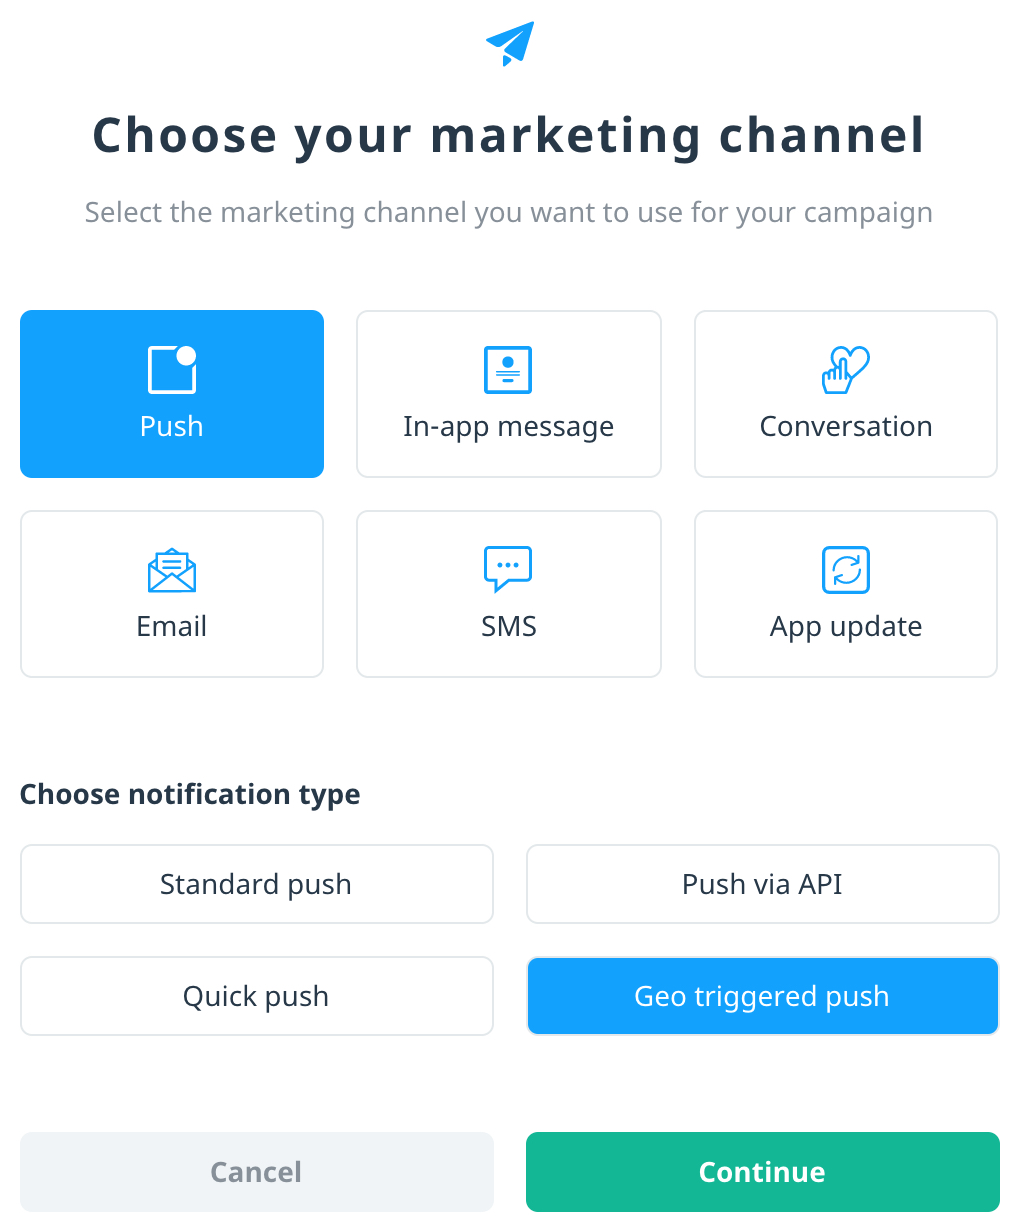 Channel selector with push selected as the channel and geo triggered as the push type